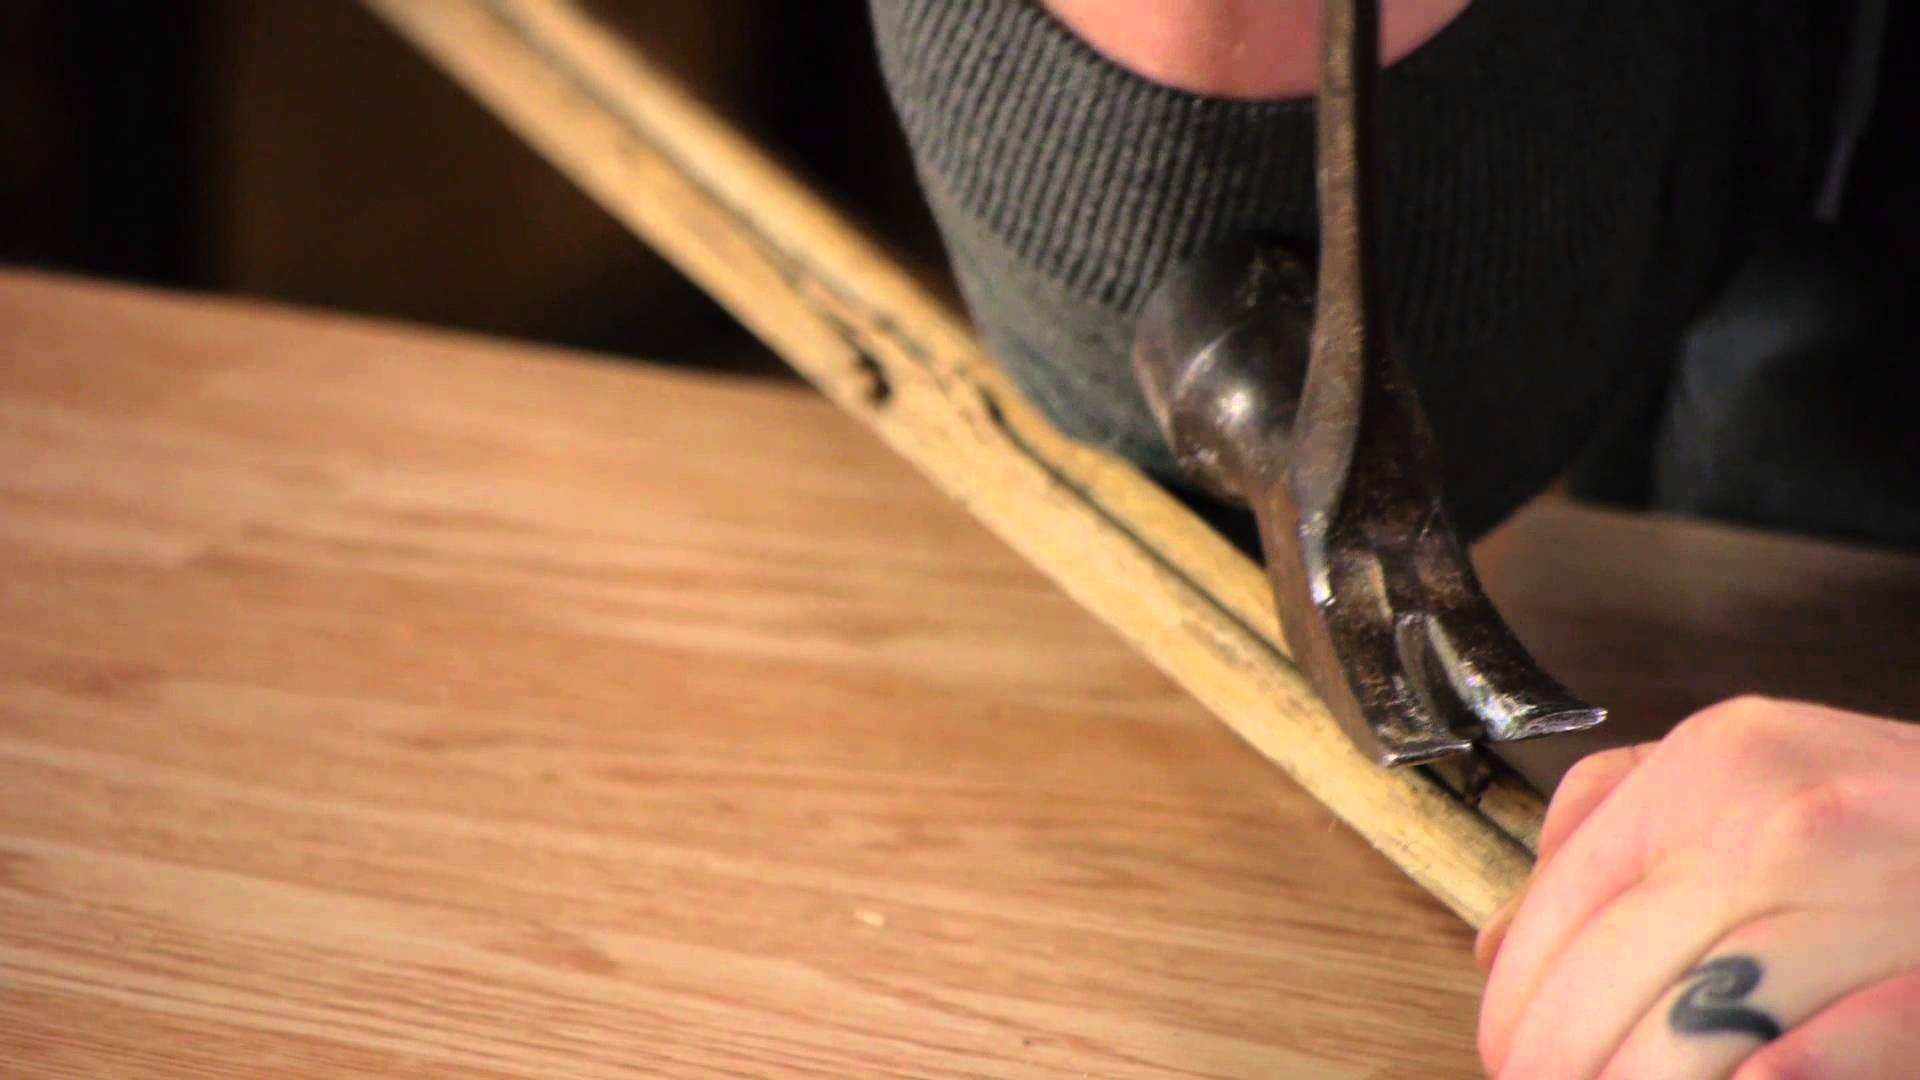 How to Remove Nails From Old Flooring Easily Nails Screws & Wall